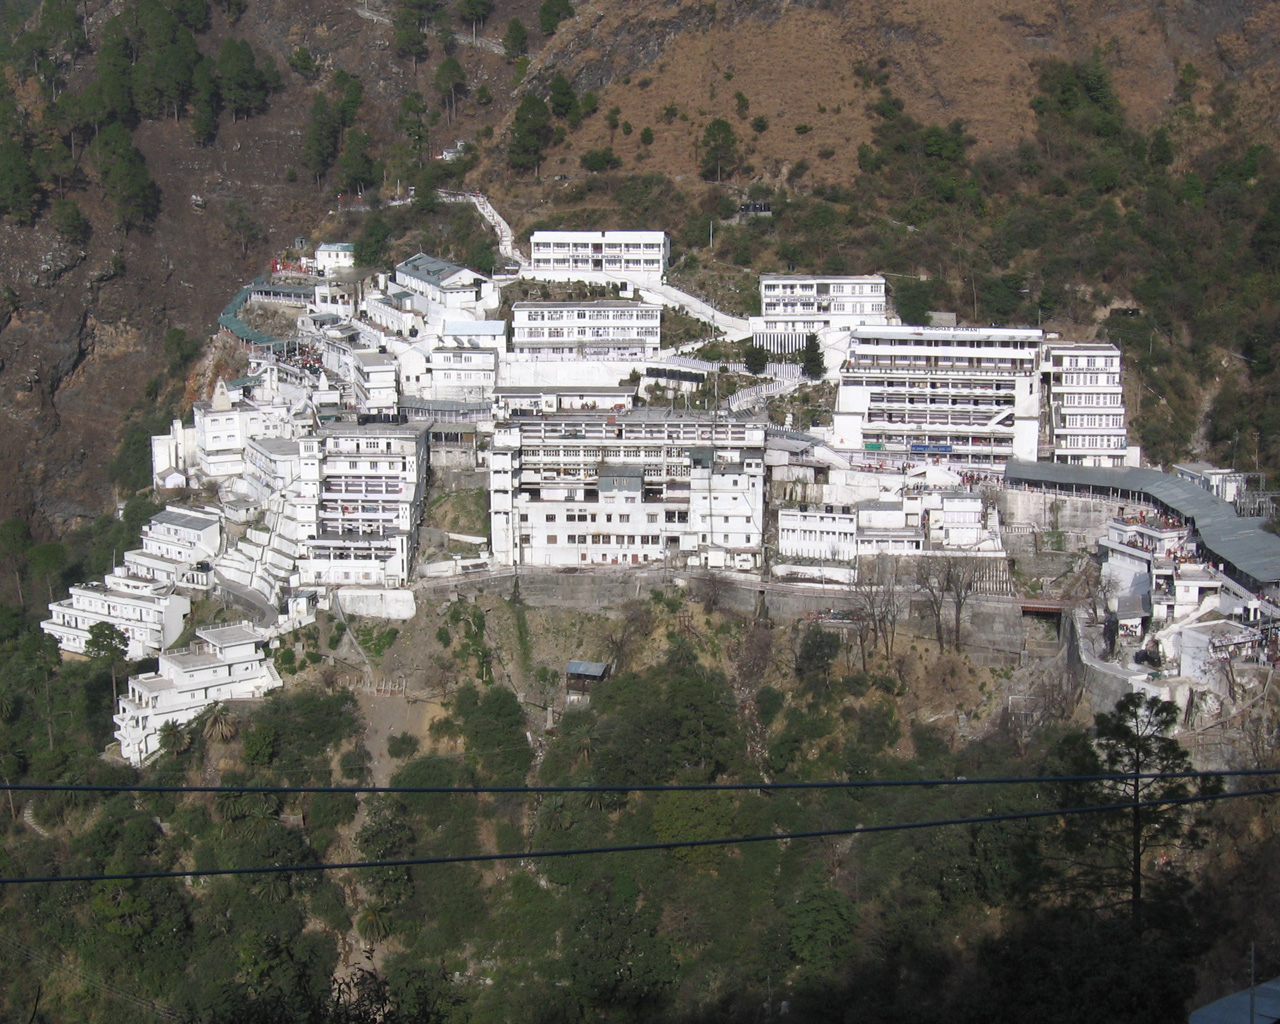 helicopter booking vaishno devi with Downloads on 679 besides Ajanta Ellora Tours together with A Holy Trip To Vaishno Devi Temple likewise Hotel Mahaluxmi Palace Katra besides Railway.